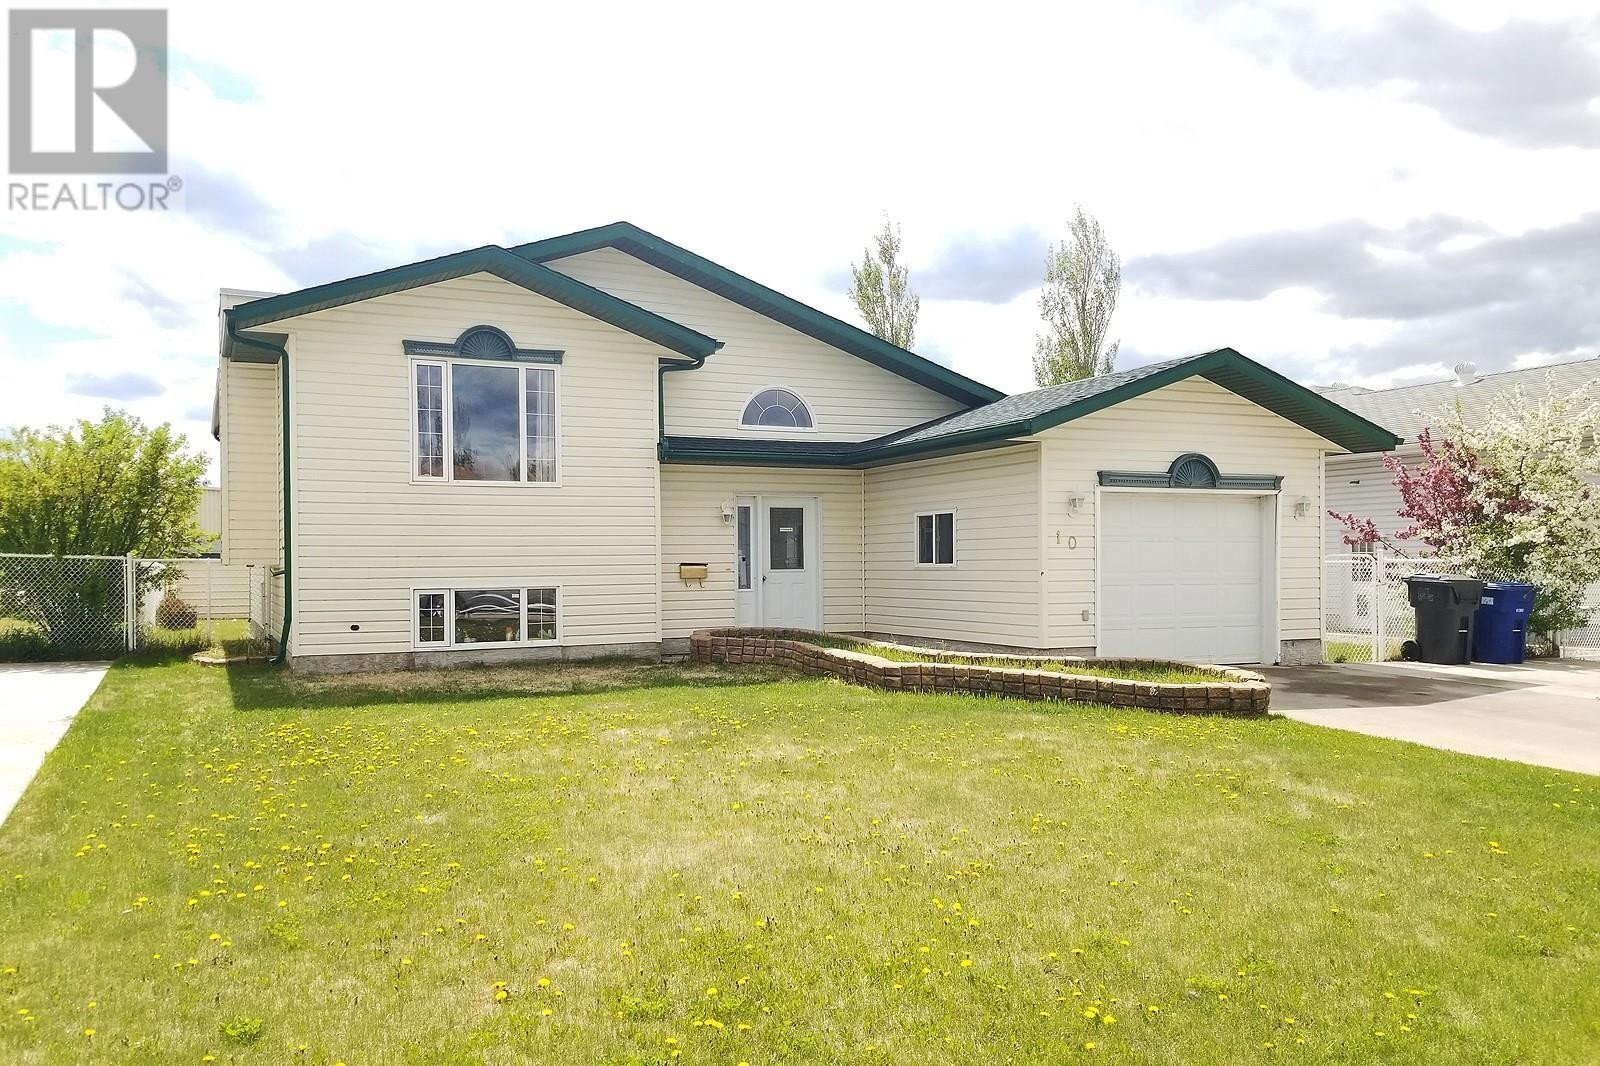 House for sale at 10 Jackson Dr Meadow Lake Saskatchewan - MLS: SK828323